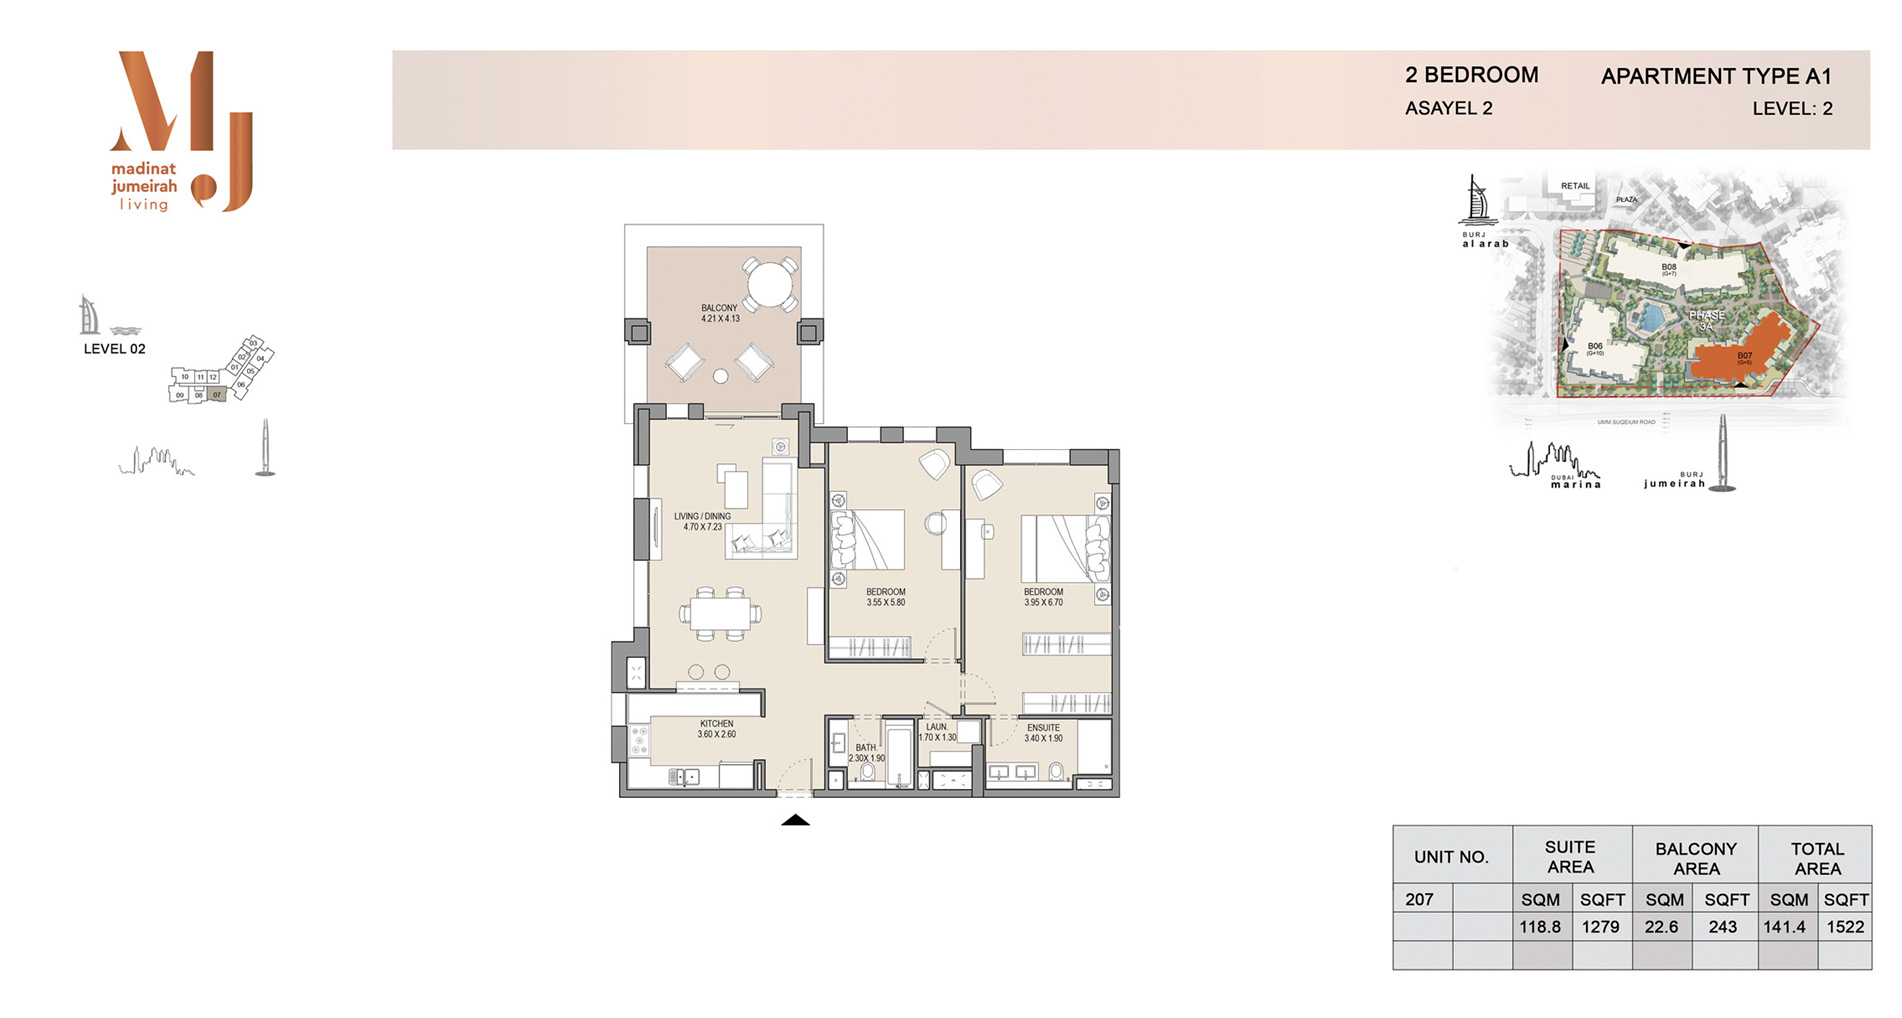 Building 2, 2 Bed Type A1 Level 2, Size 1522    sq. ft.